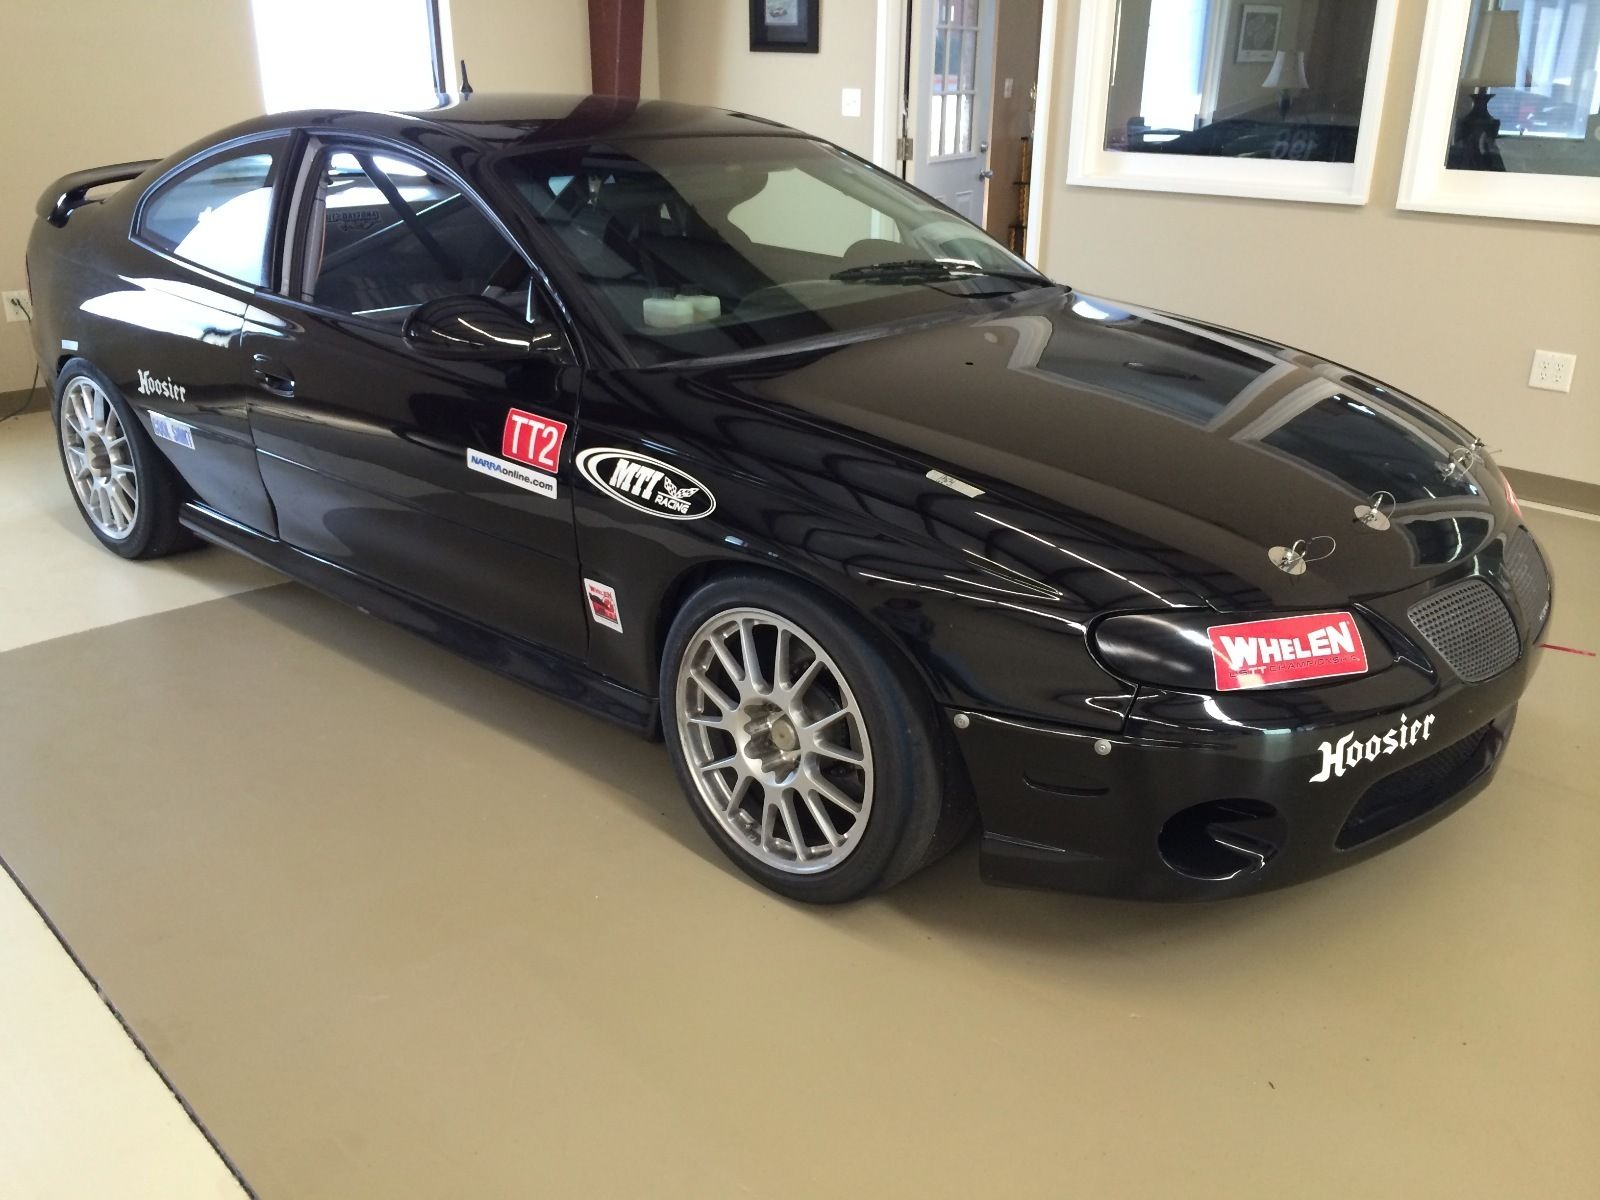 2005 Pontiac Gto Pro Built Grand Am Koni Challenge Car For